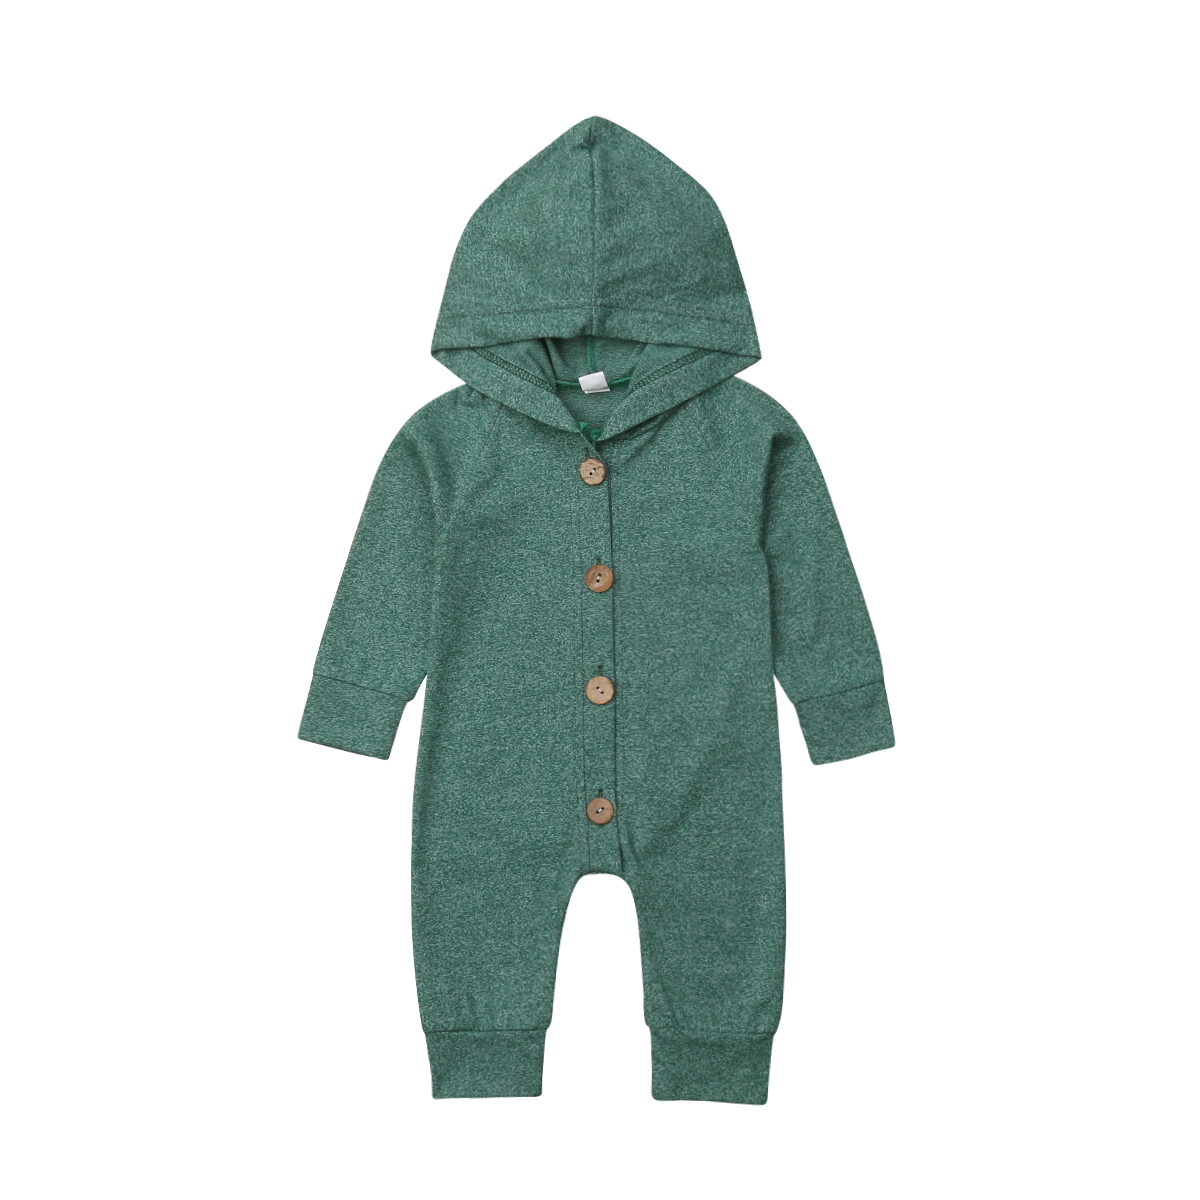 Autumn Winter Infant Baby Boys Girls Clothing Long Sleeve Hooded   Romper   Cotton Casual Kids Outfit Clothes Baby Boys 0-24M